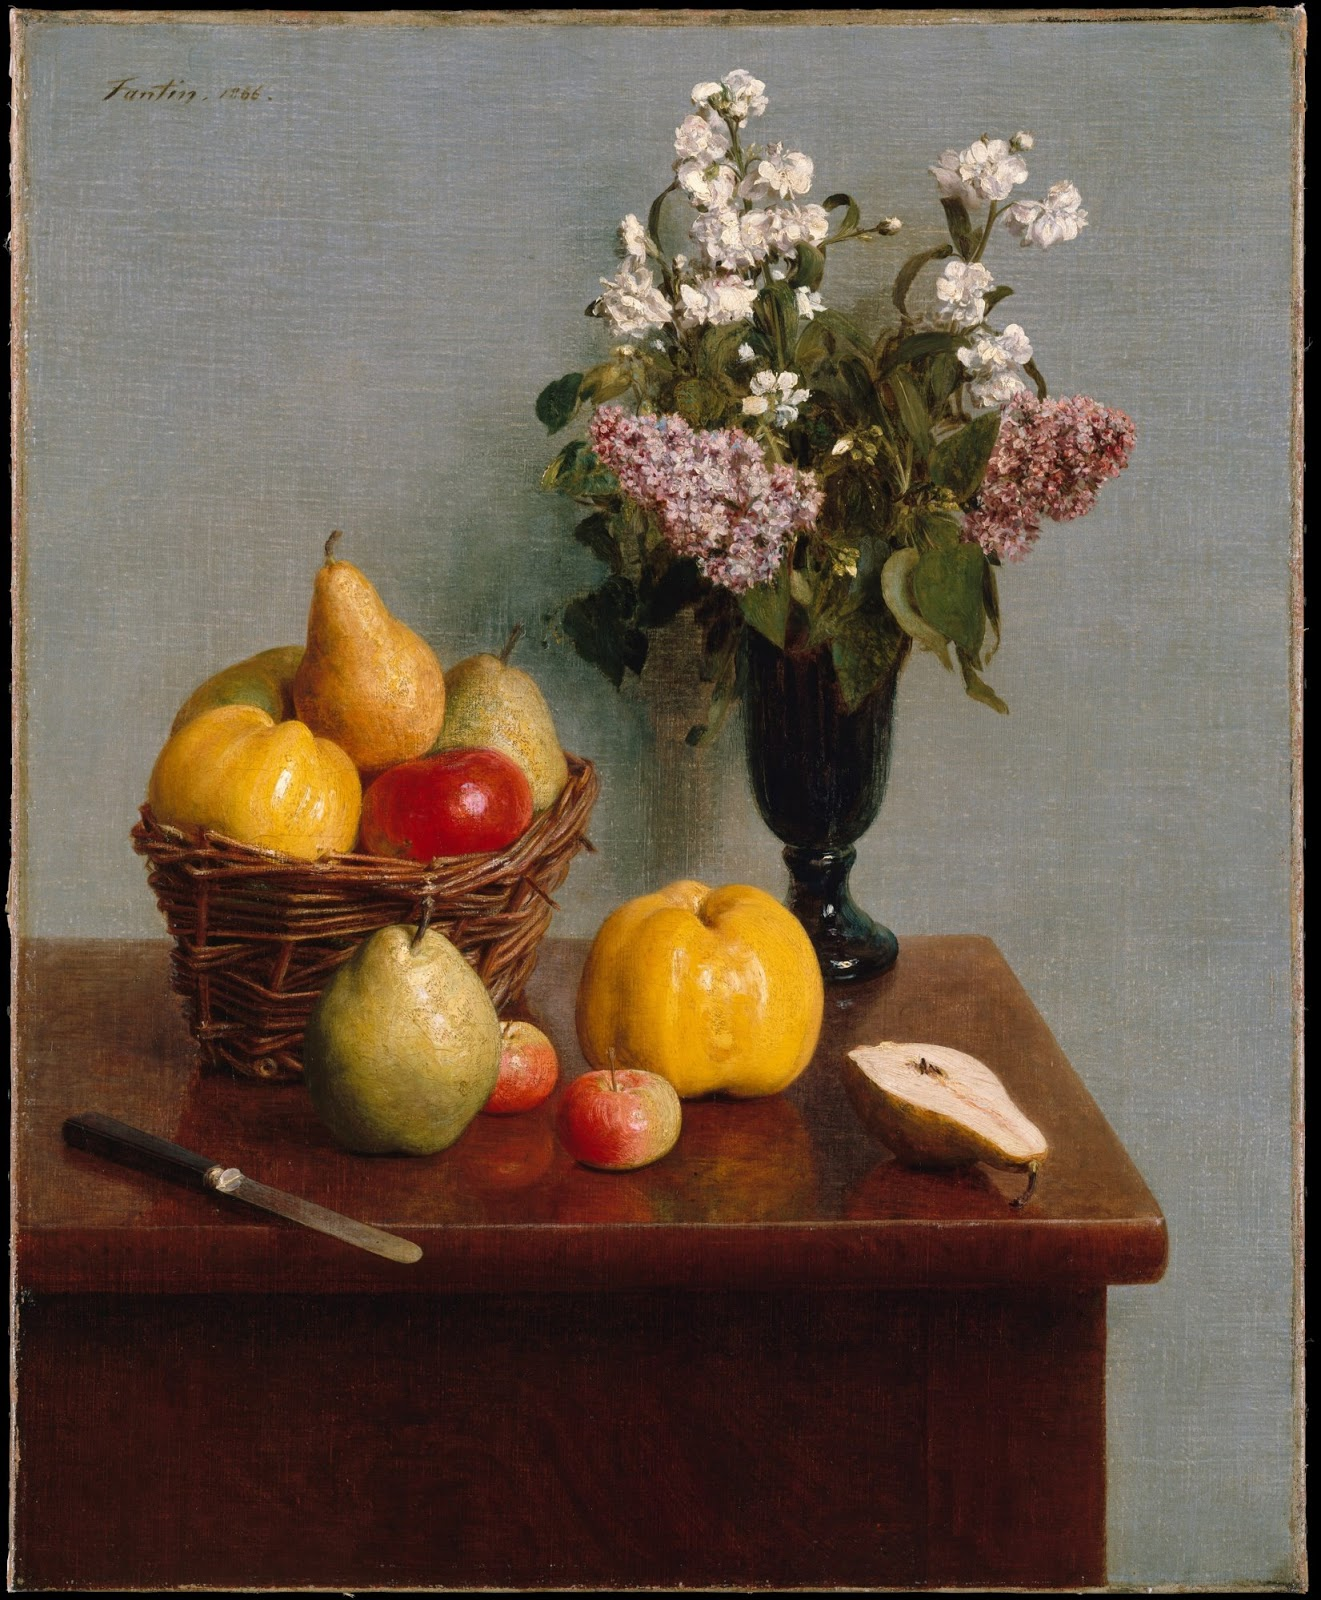 Spencer Alley: French Still Life Paintings, 19th century